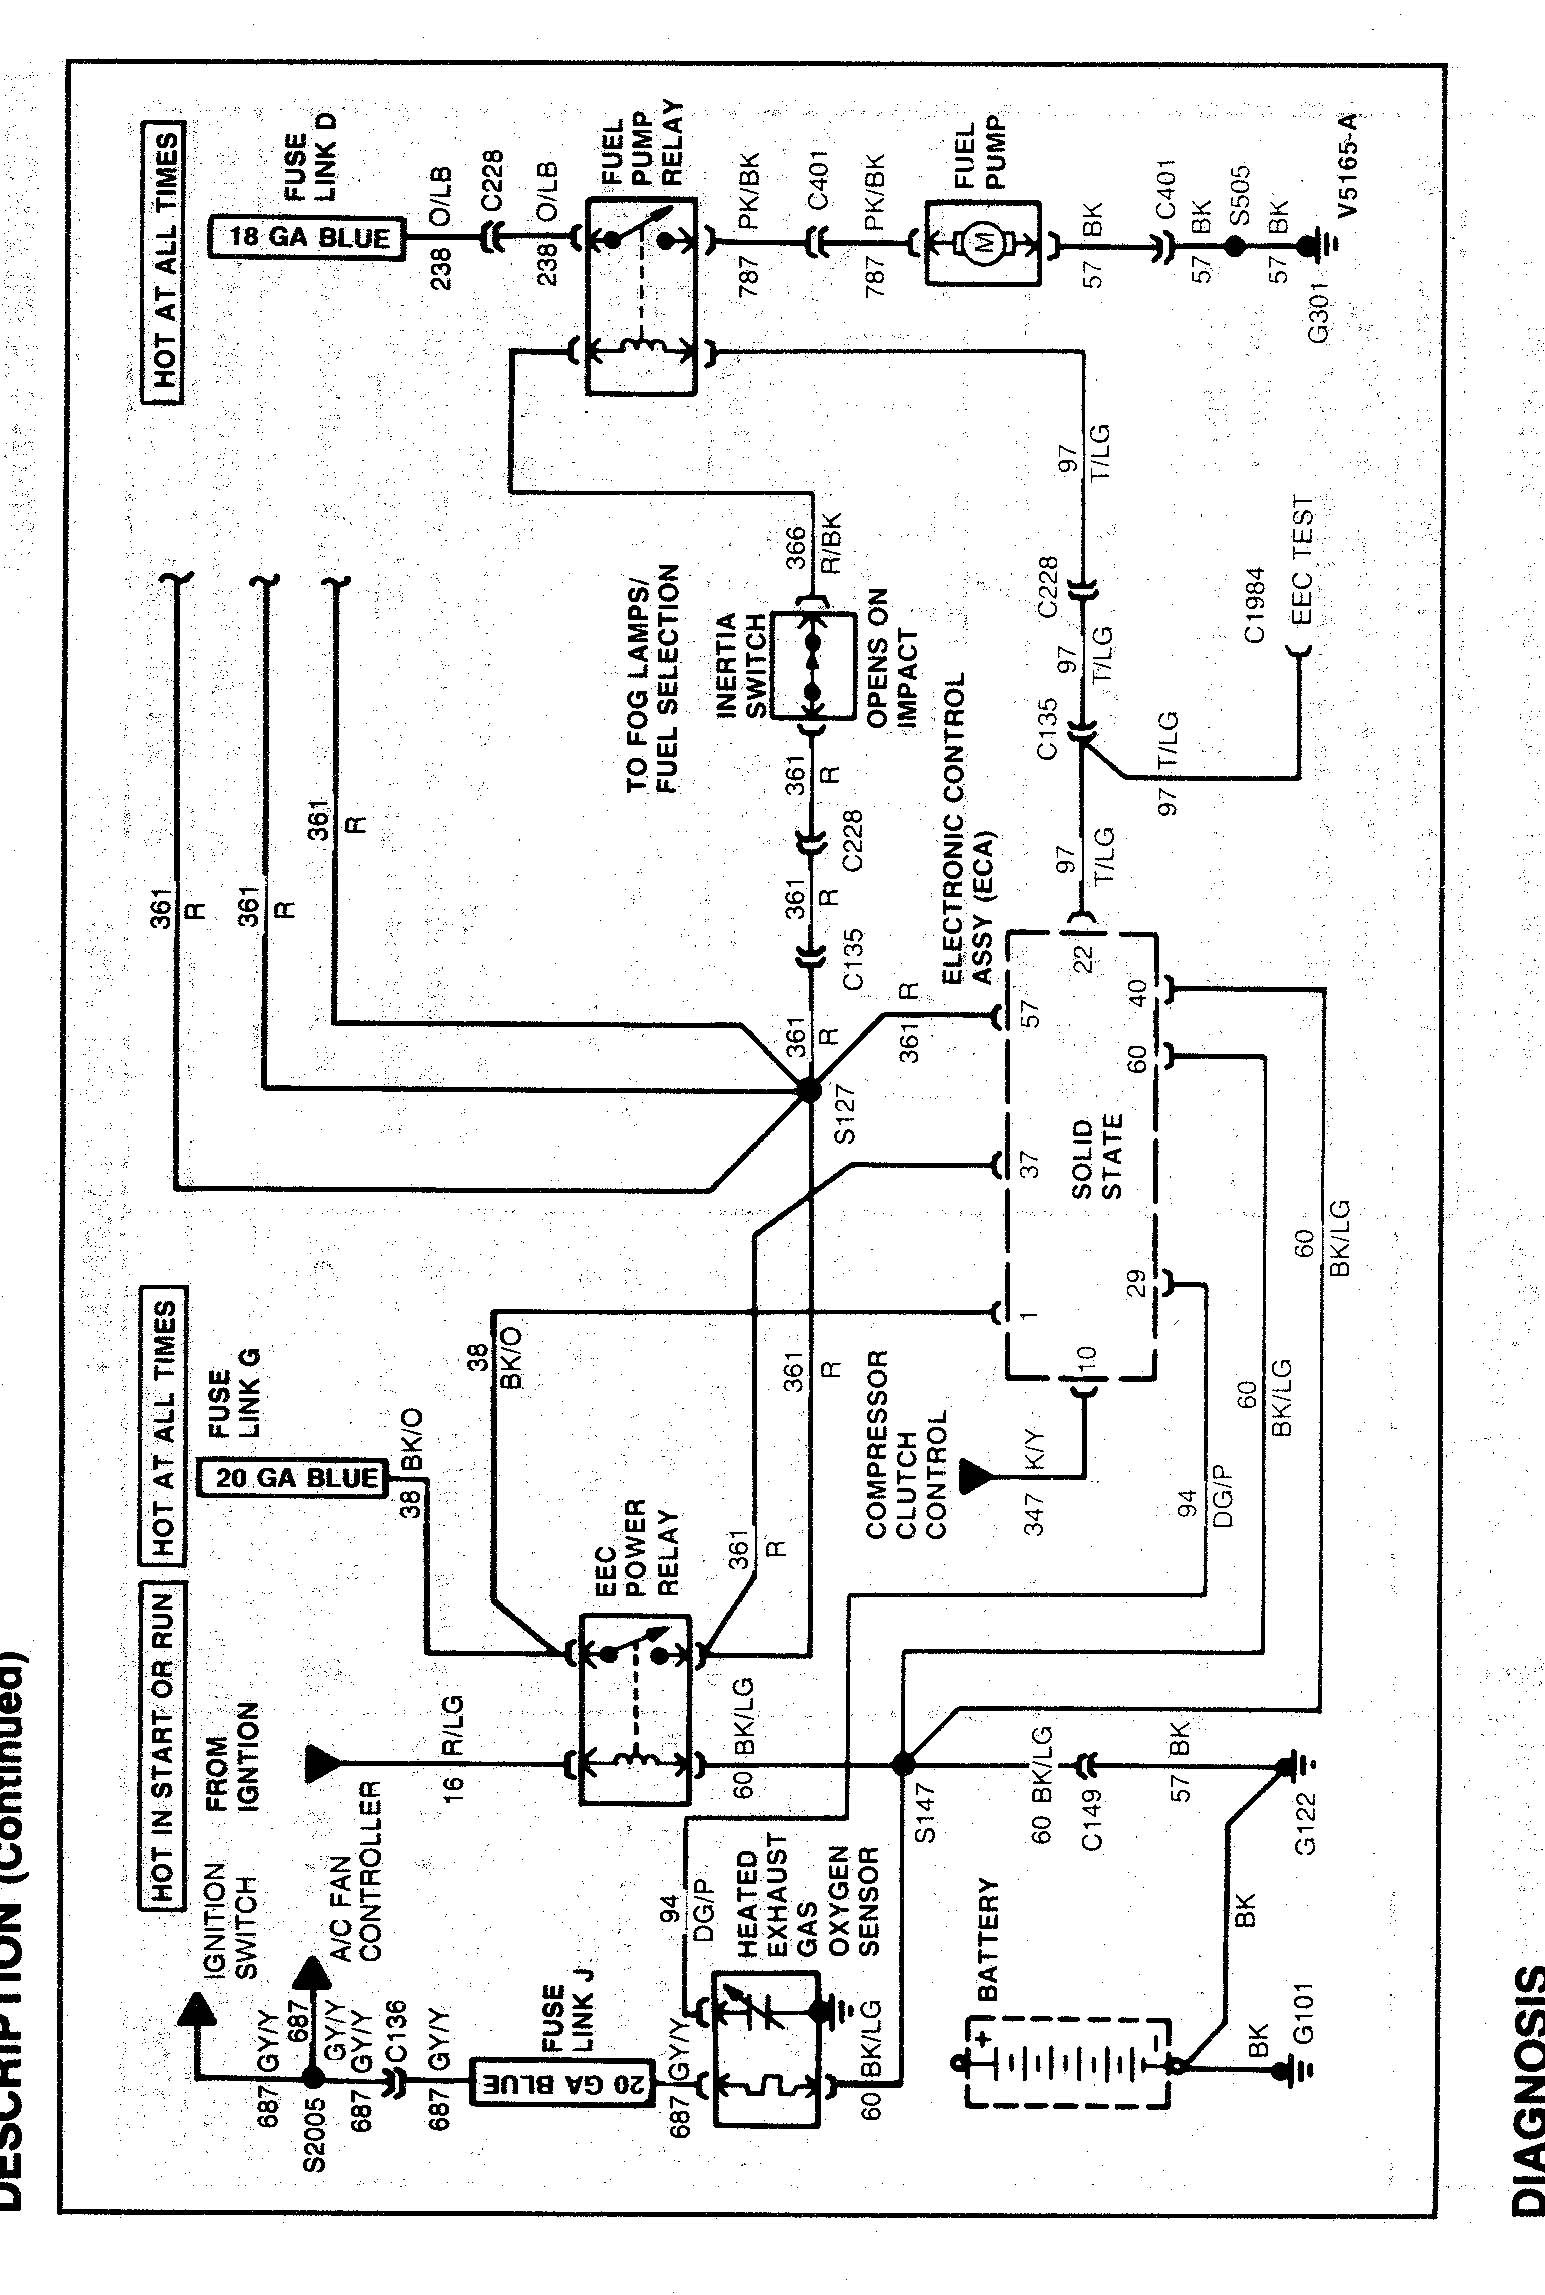 1992 ford f150 fuel pump wiring diagram eec relay wire mustangforums com 89 f150 fuel pump wiring diagram